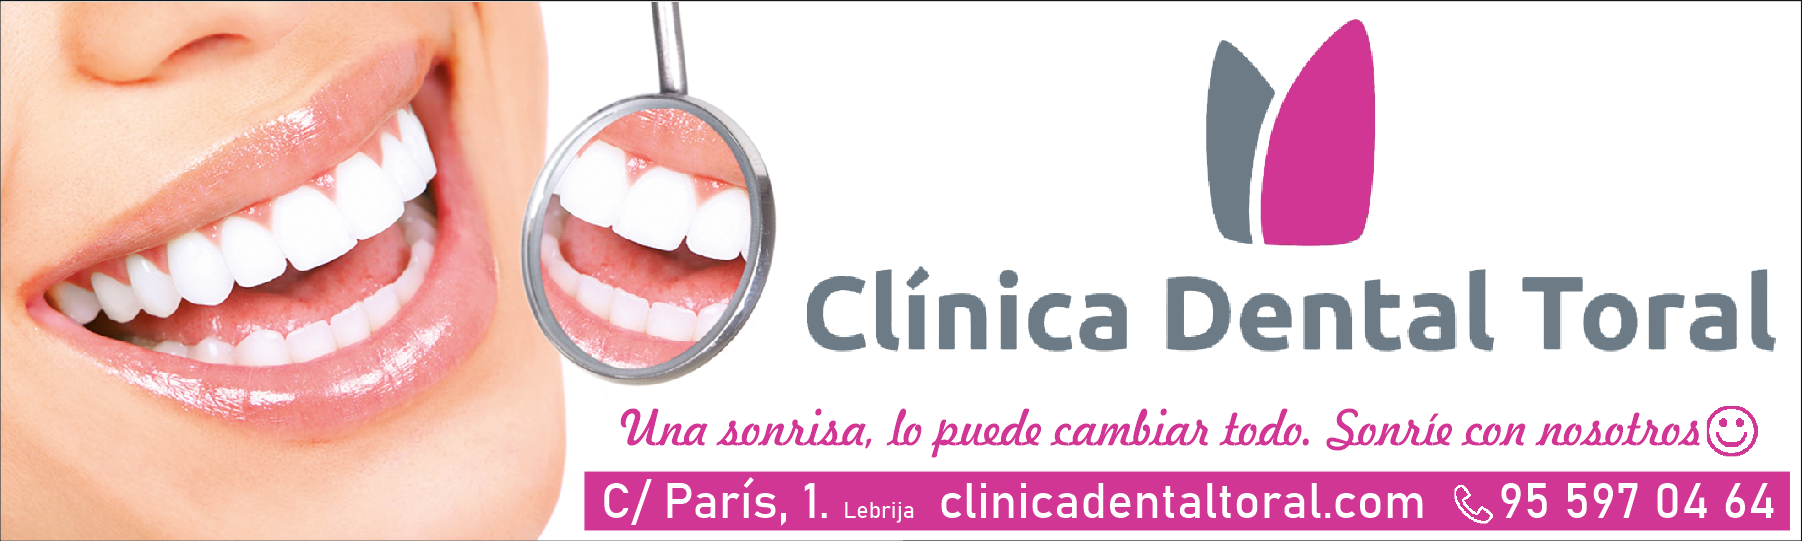 Clinica Dental Toral